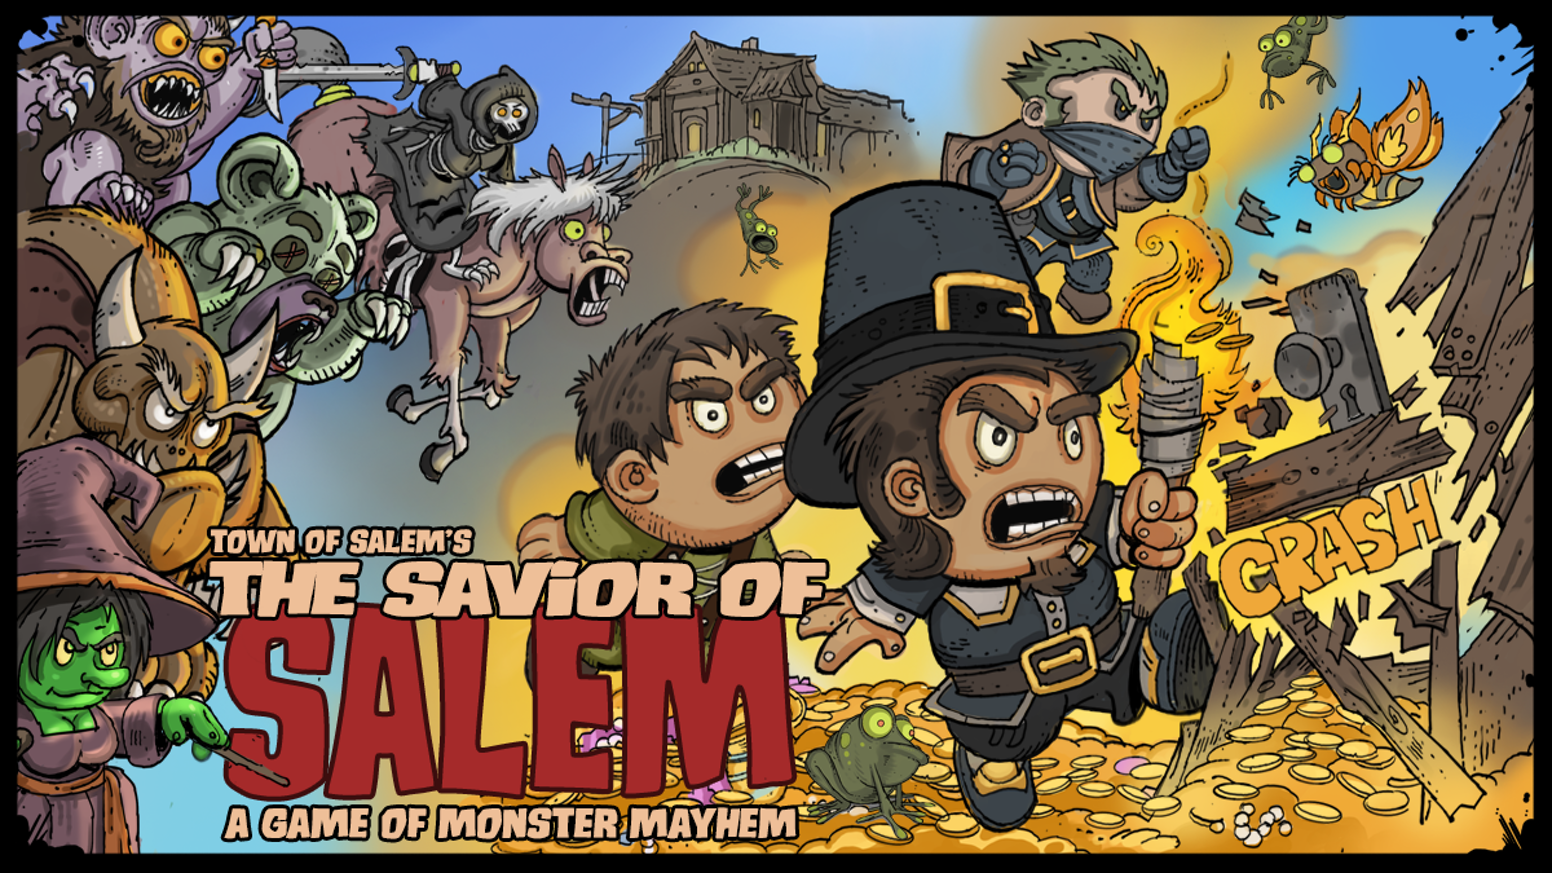 The Savior of Salem is a simple, easy to learn, multiplayer RPG dungeon crawling card game in the Town of Salem world.